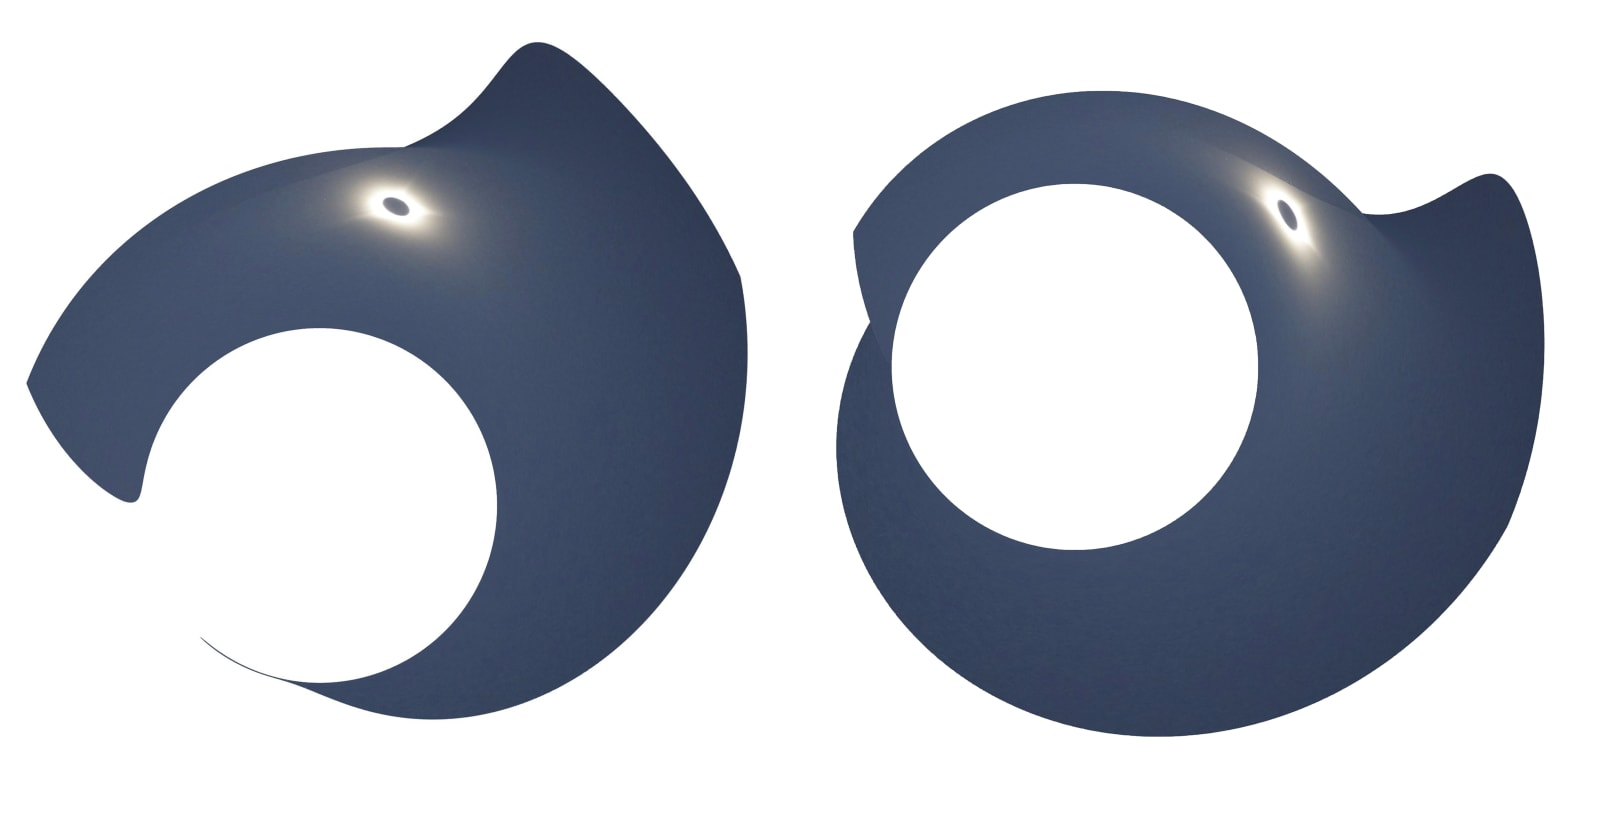 Eclipse Duo, 2021